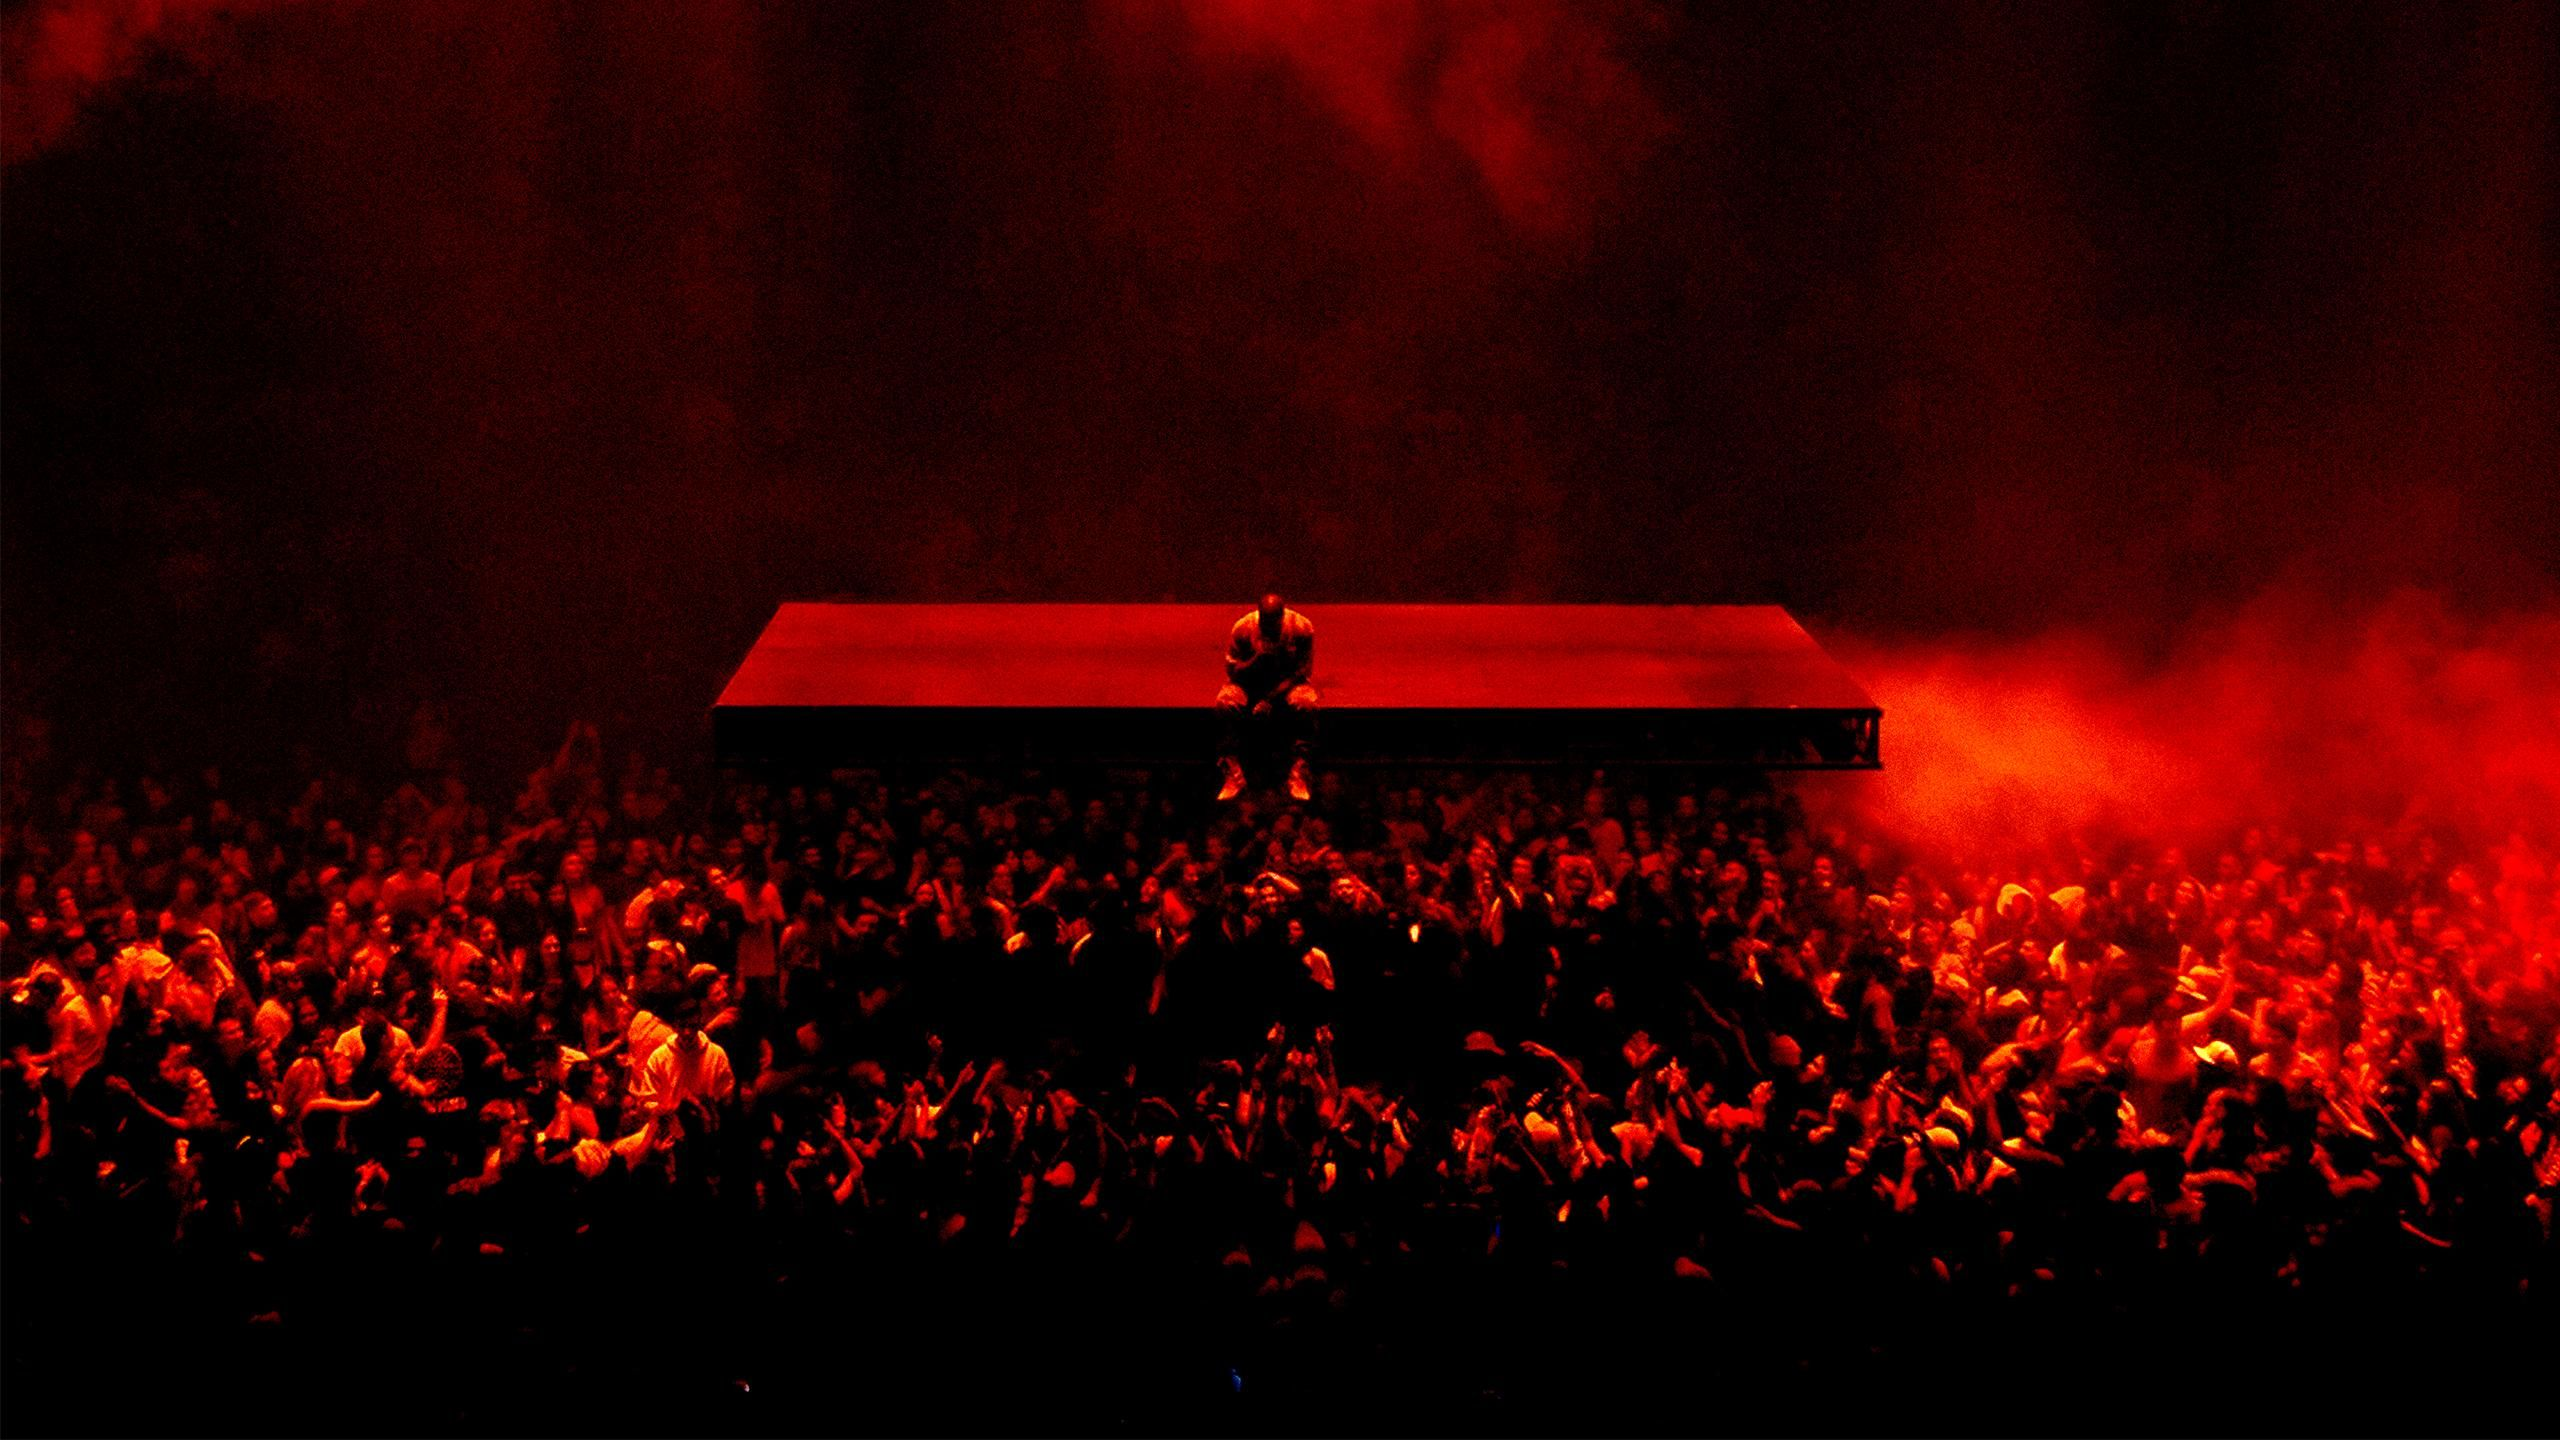 Kanye West Wallpapers Picture On Wallpaper 1080p Hd In 2020 Yeezus Wallpaper Kanye West Wallpaper Wallpaper Pictures